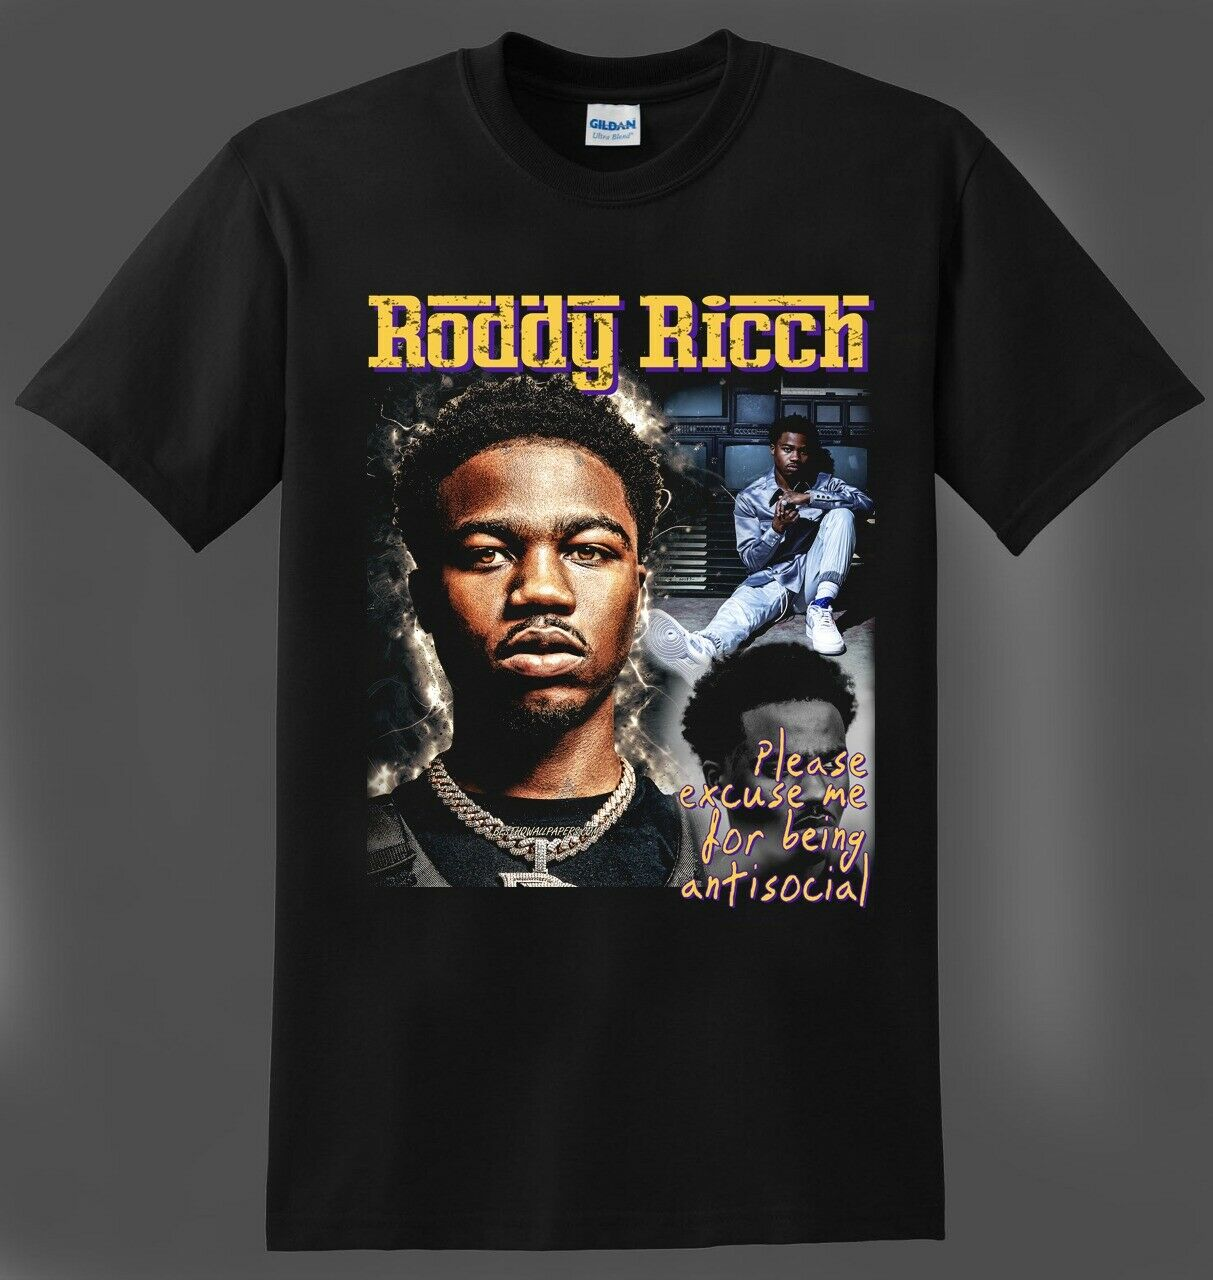 Roddy Ricch T-Shirt Being Antisocial Inspired Rap Hip Hop R&B Tee